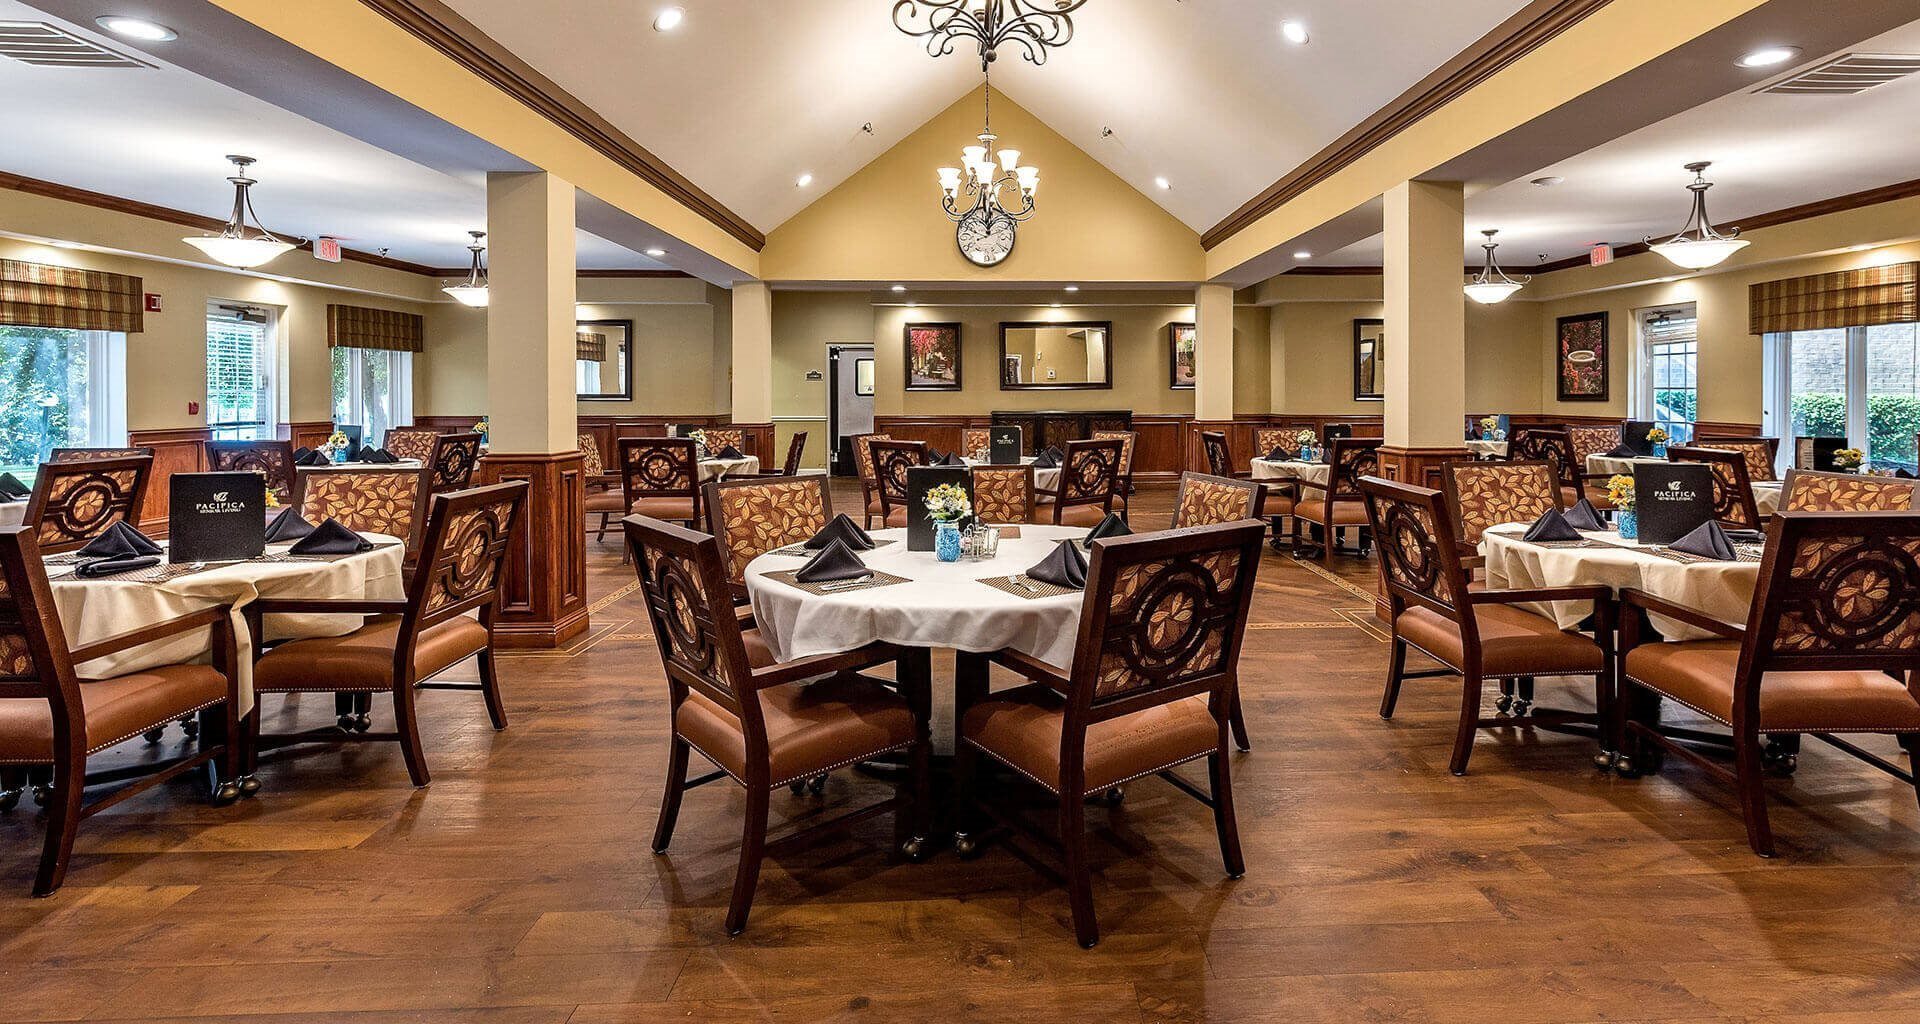 Restaurant Style Dining Room at Pacifica Senior Living Skylyn, Spartanburg